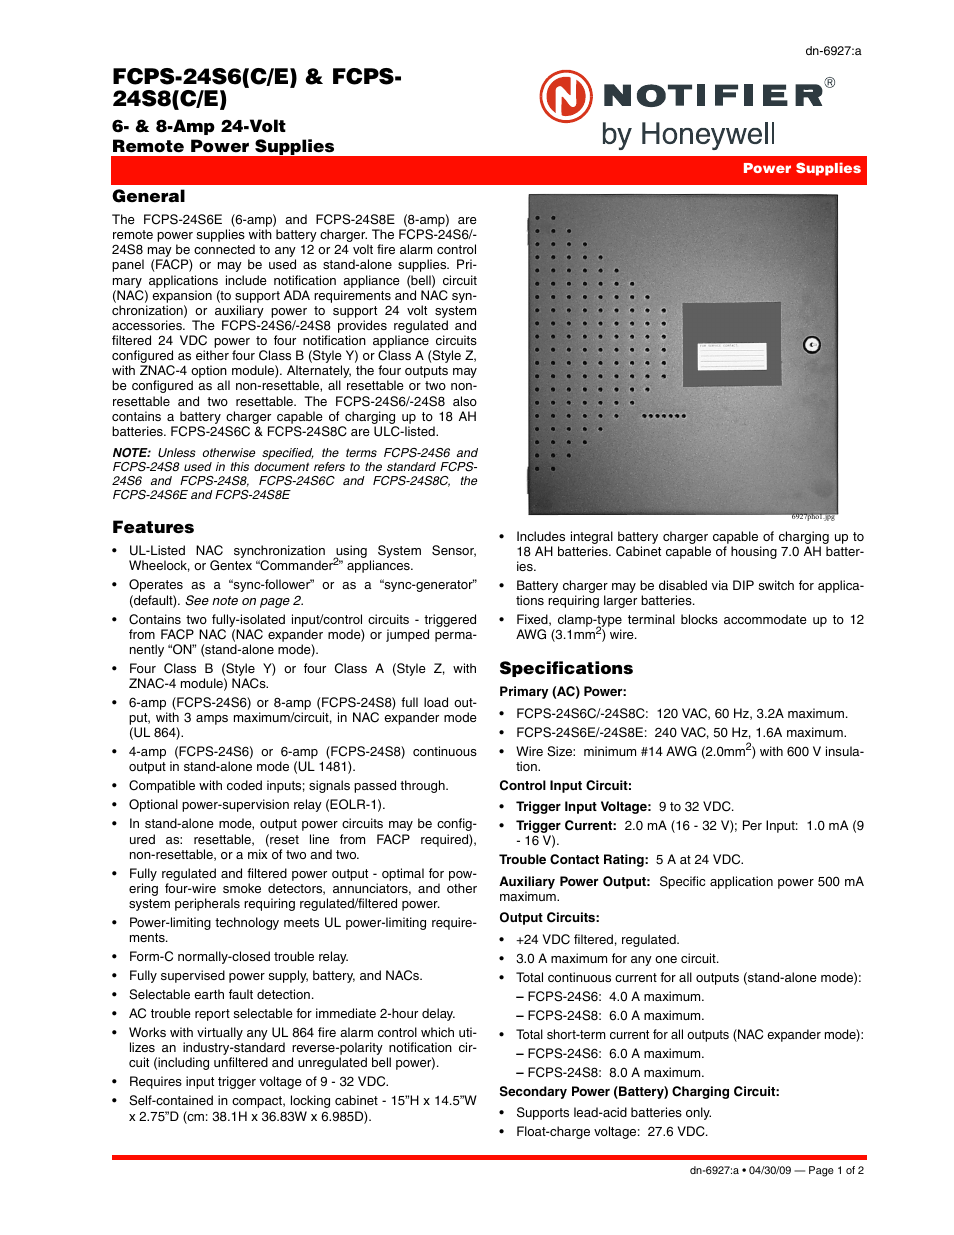 notifier fcps 24s8 user manual 2 pages also for fcps 24s6 rh manualsdir com Notifier System 5000 Operation Manual notifier fcps 24s8 installation manual